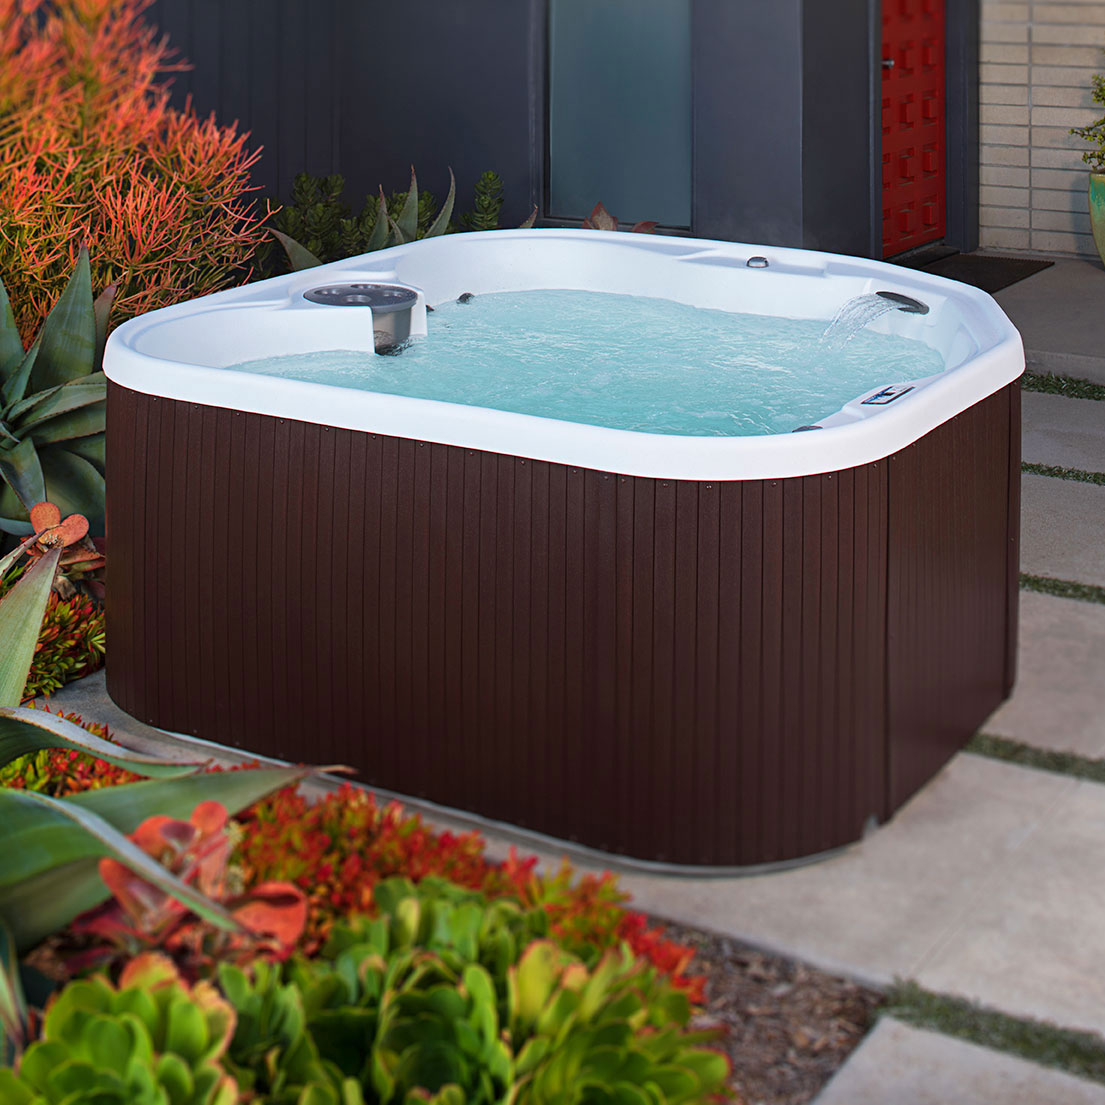 silver ique tub tahiti plastic tubs hottubs sweden series of budget hot